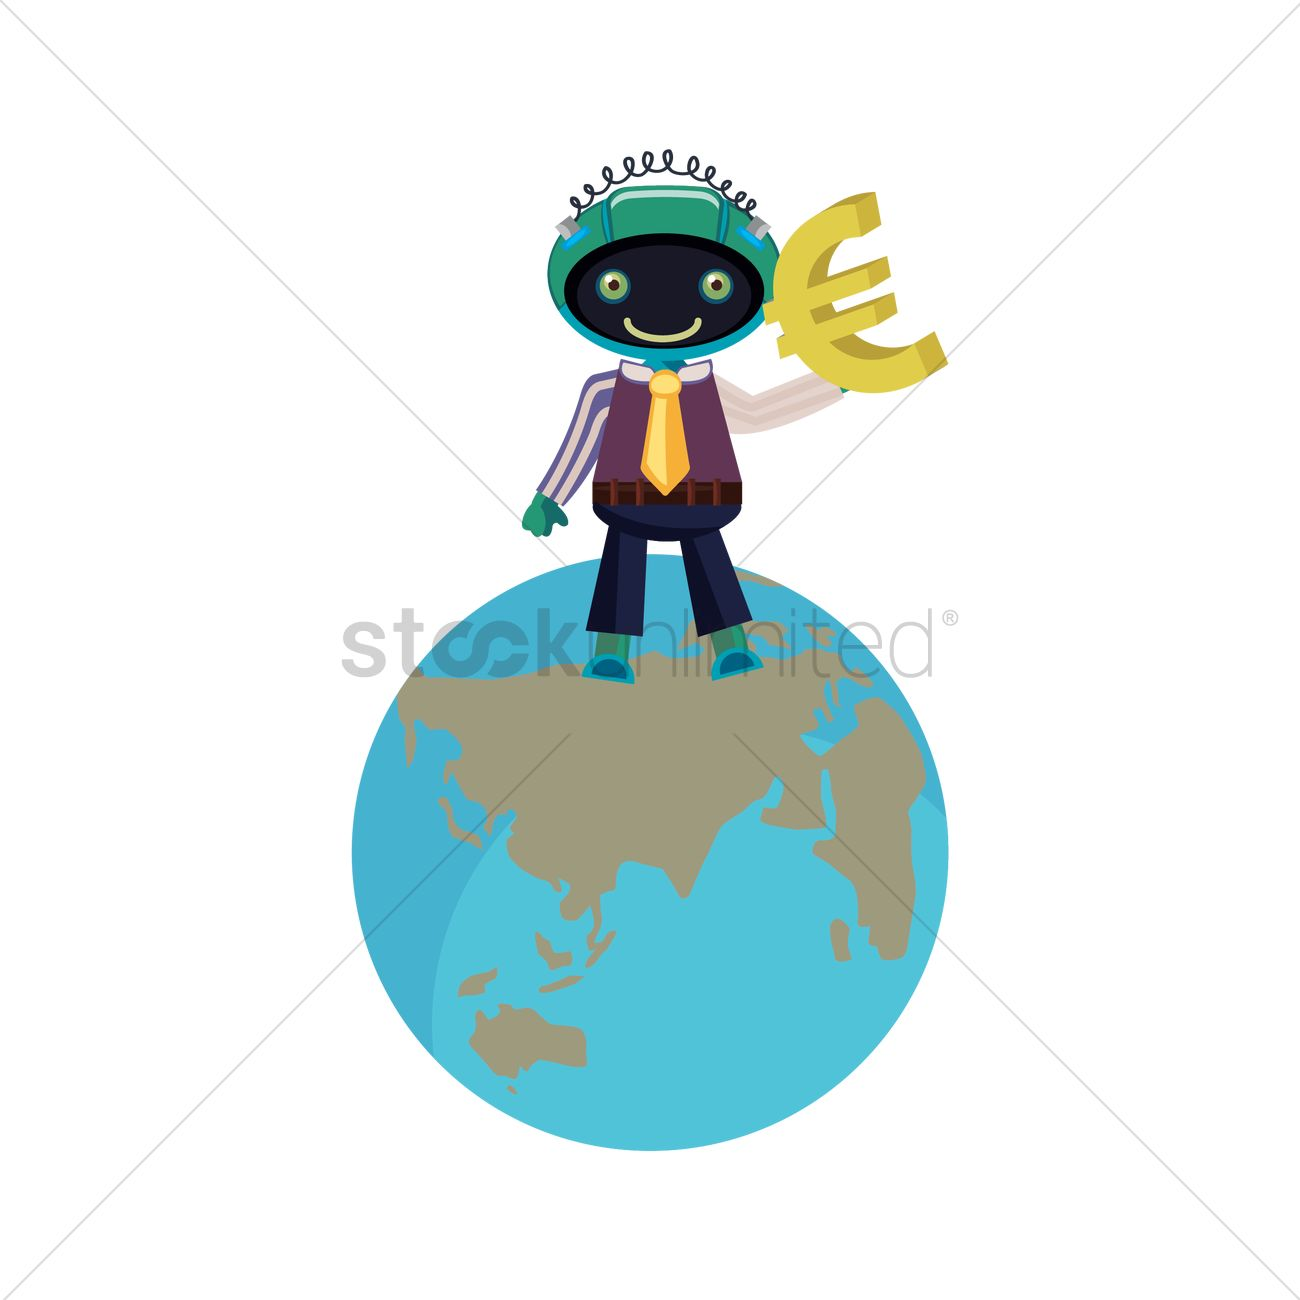 Robot Holding Euro Sign Vector Image 1391323 Stockunlimited